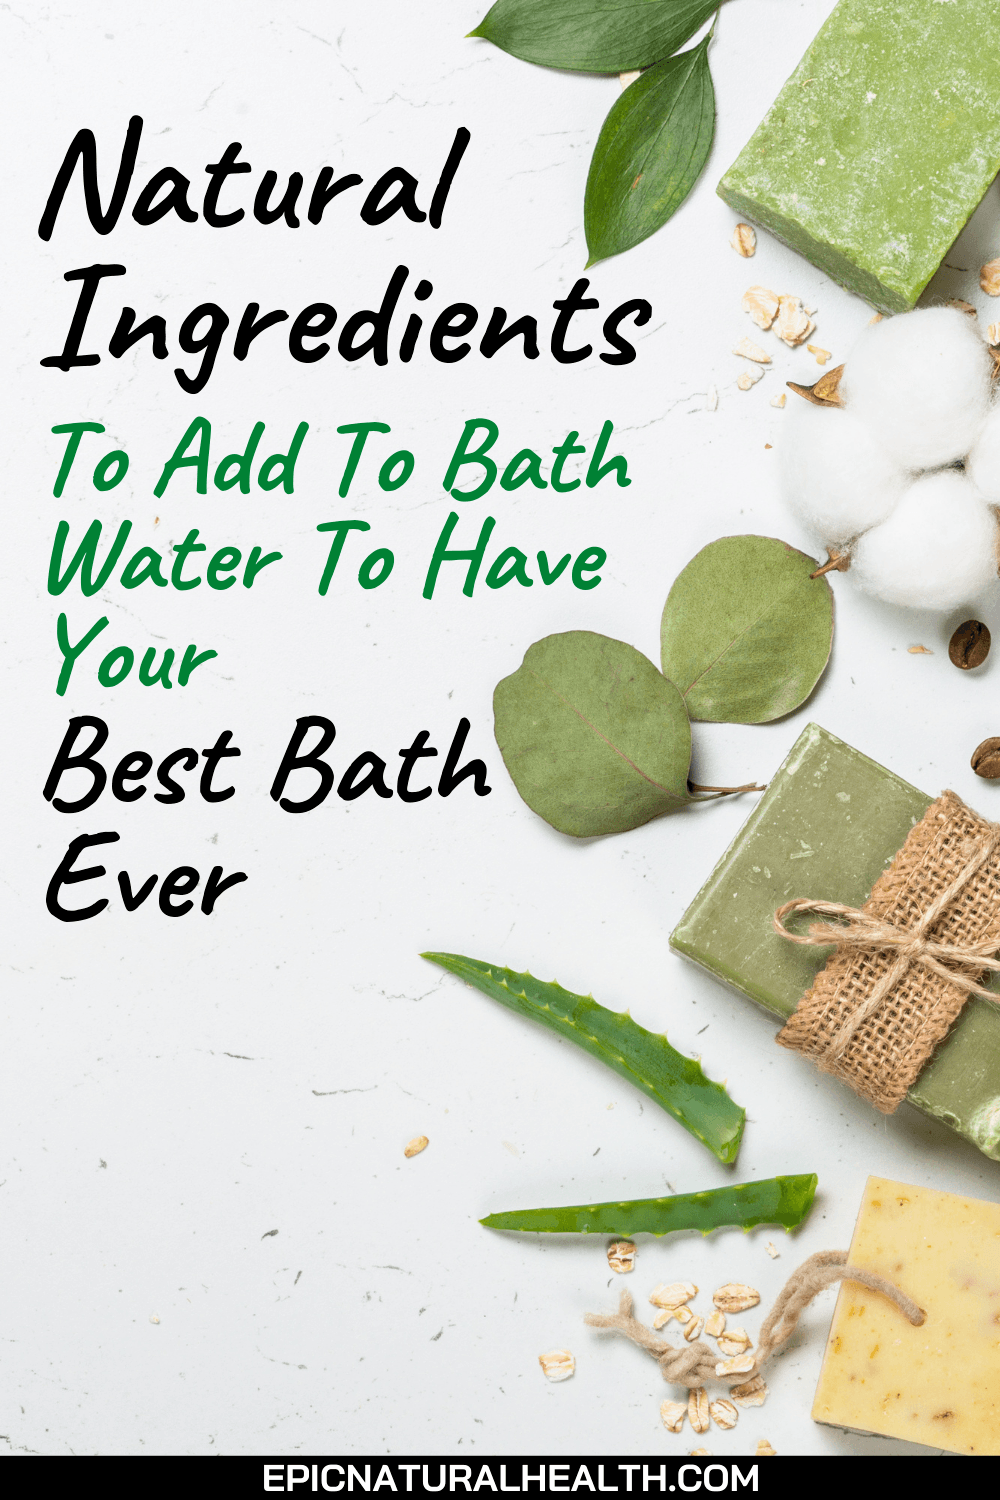 Ingredients to add to bath water to have your best bath ever